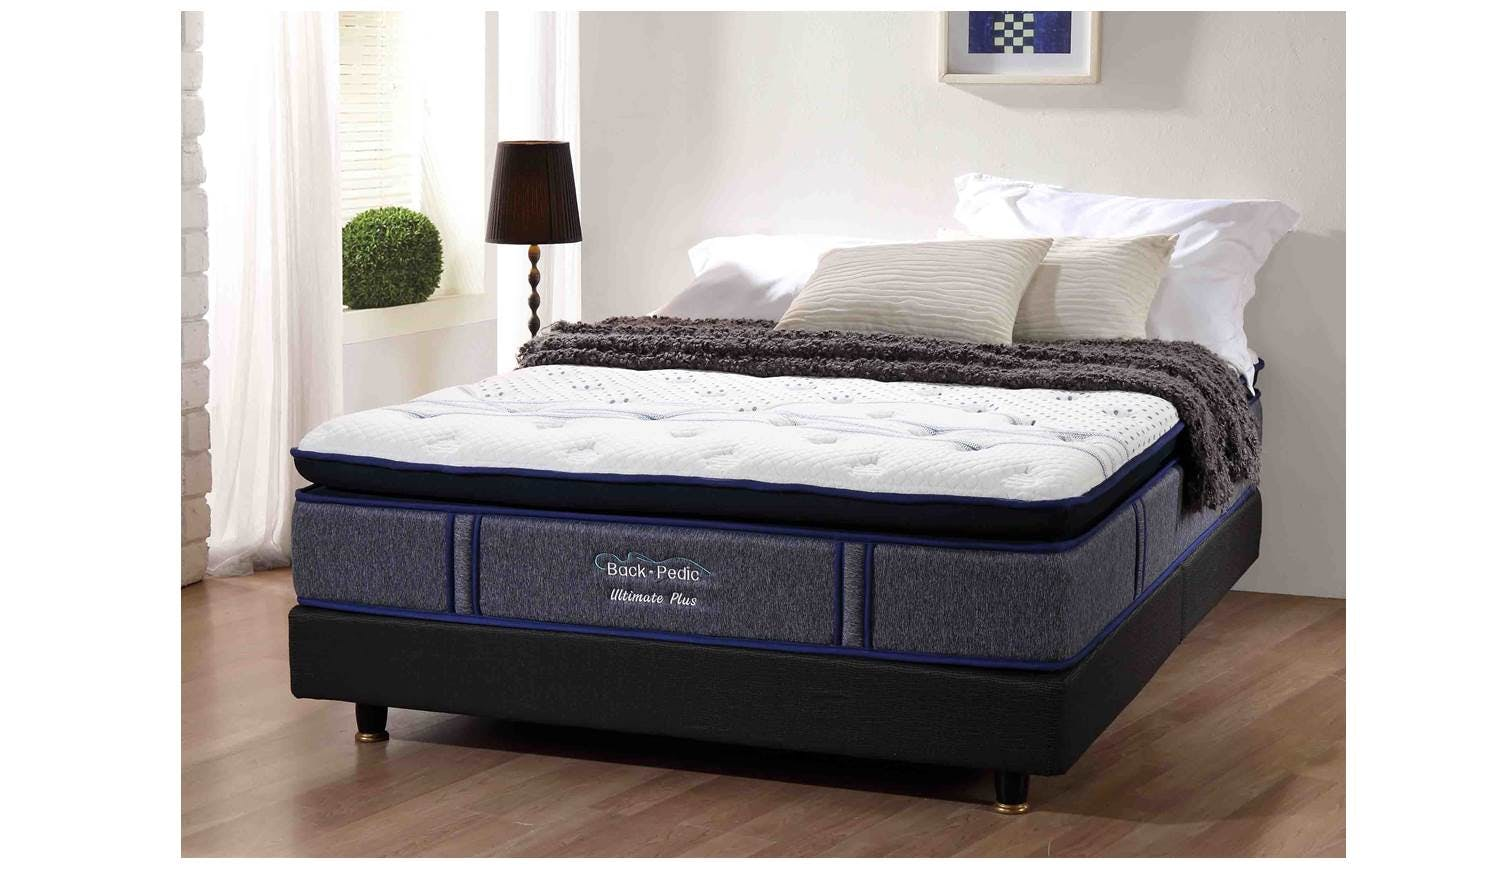 Backpedic Ultimate Plus Queen Size